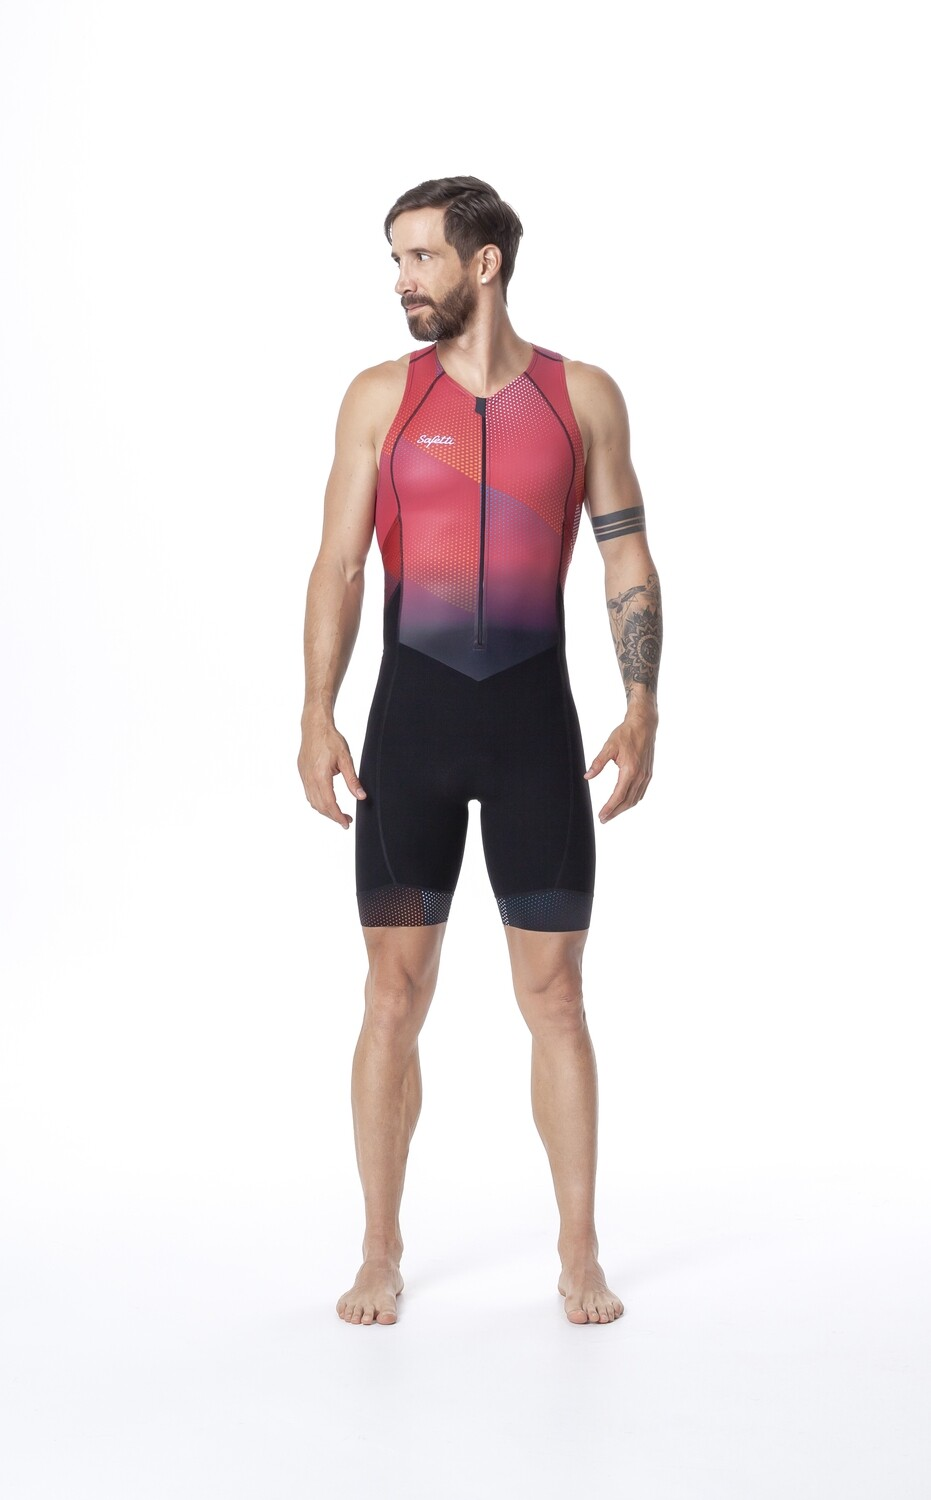 Skinsuit - Ardente Man